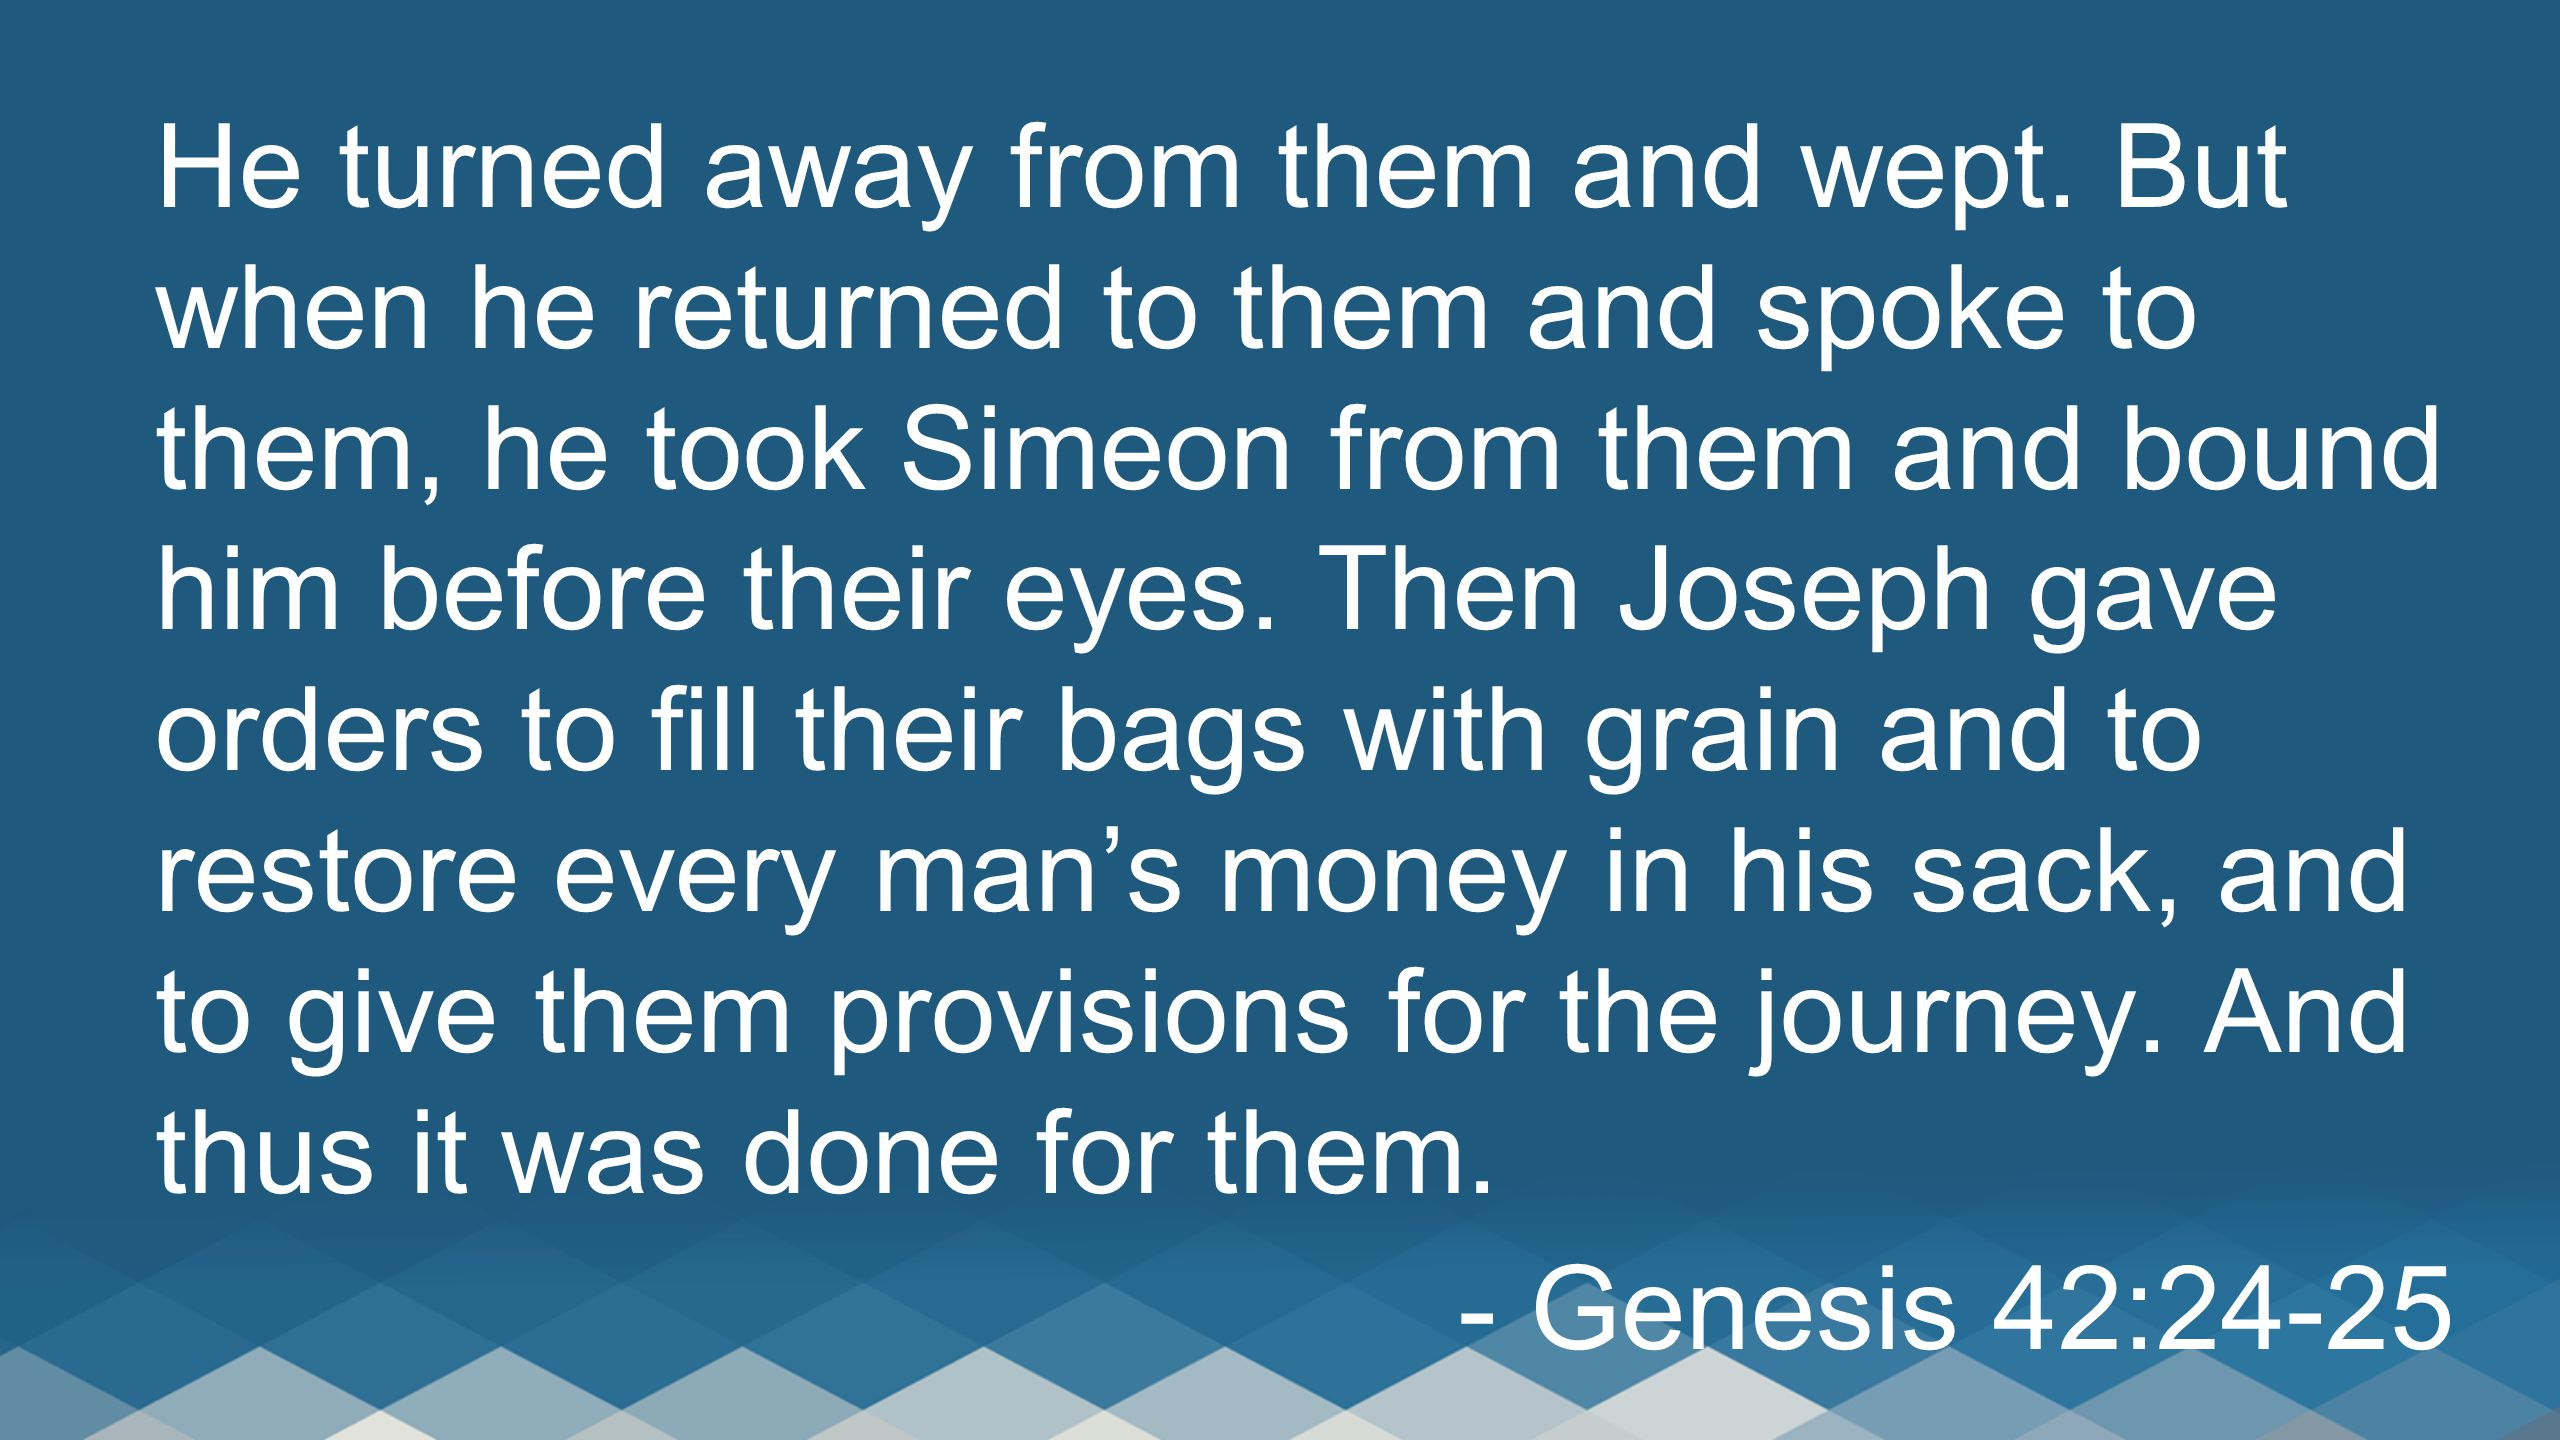 He turned away from them and wept. But when he returned to them and spoke to them, he took Simeon from them and bound him before their eyes. Then Jose